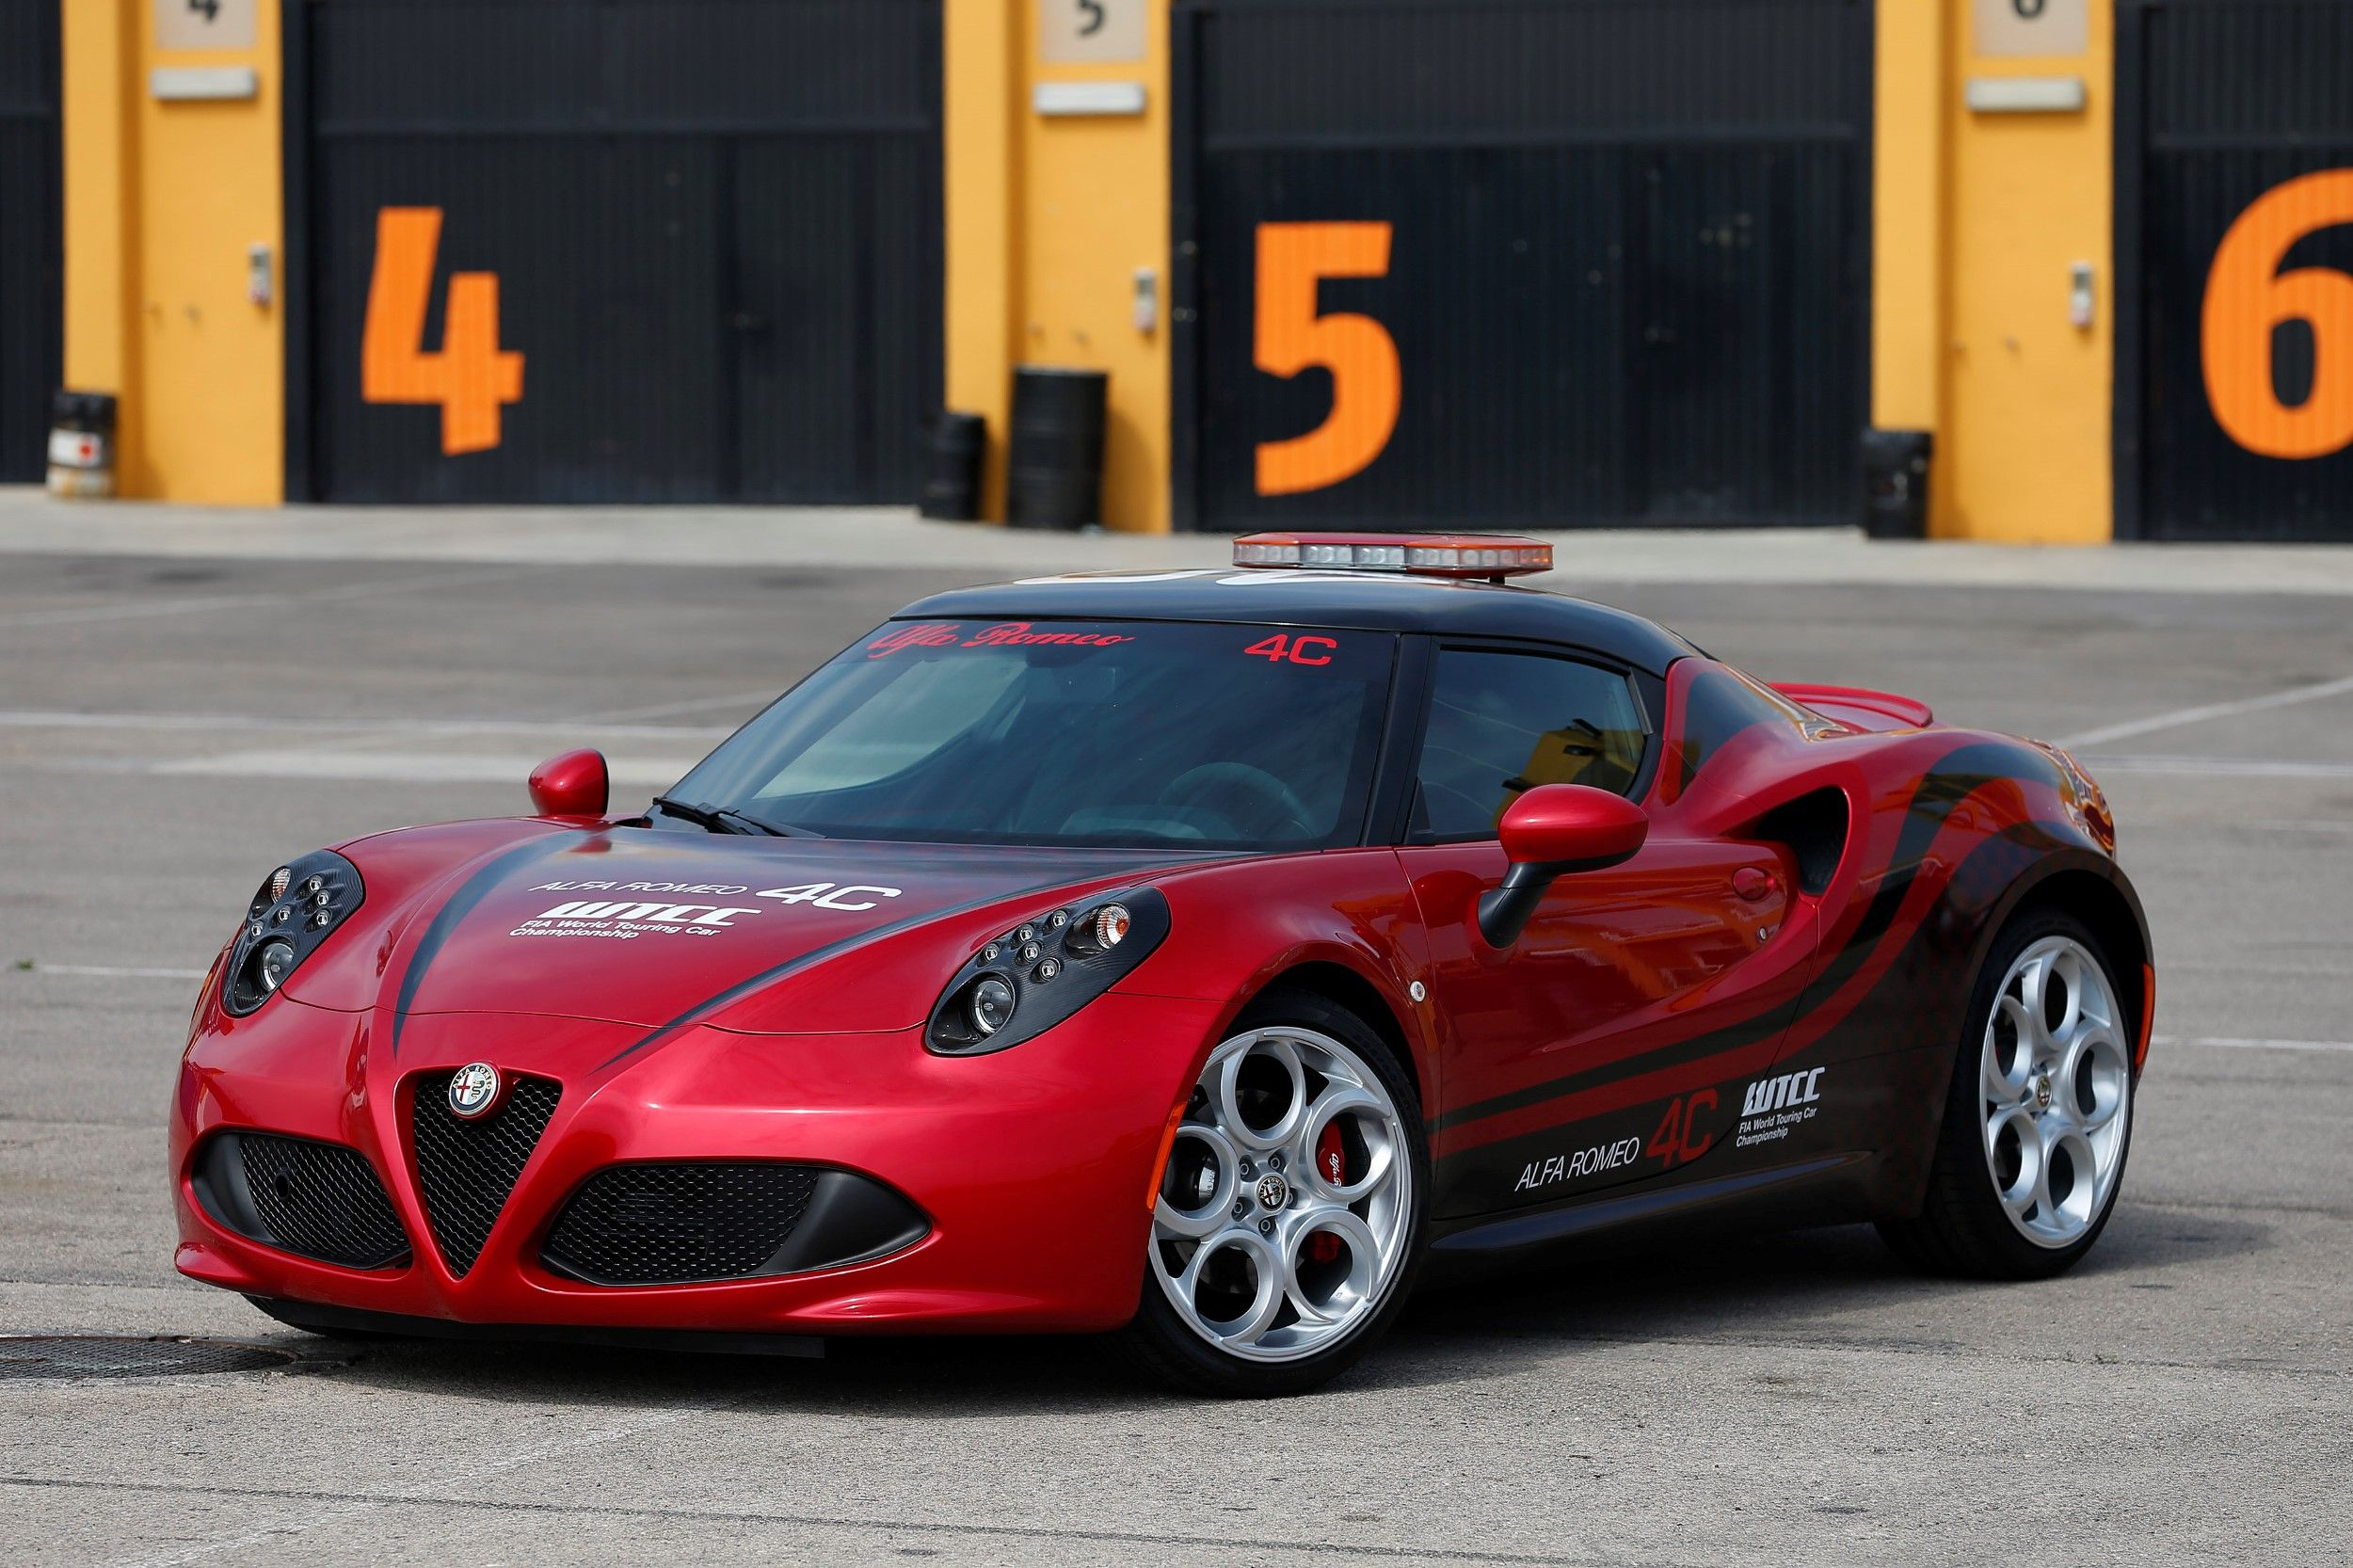 L'Alfa Romeo 4C è la Safety Car del FIA World Touring Car Championship (WTCC) per l'intera stagione 2014